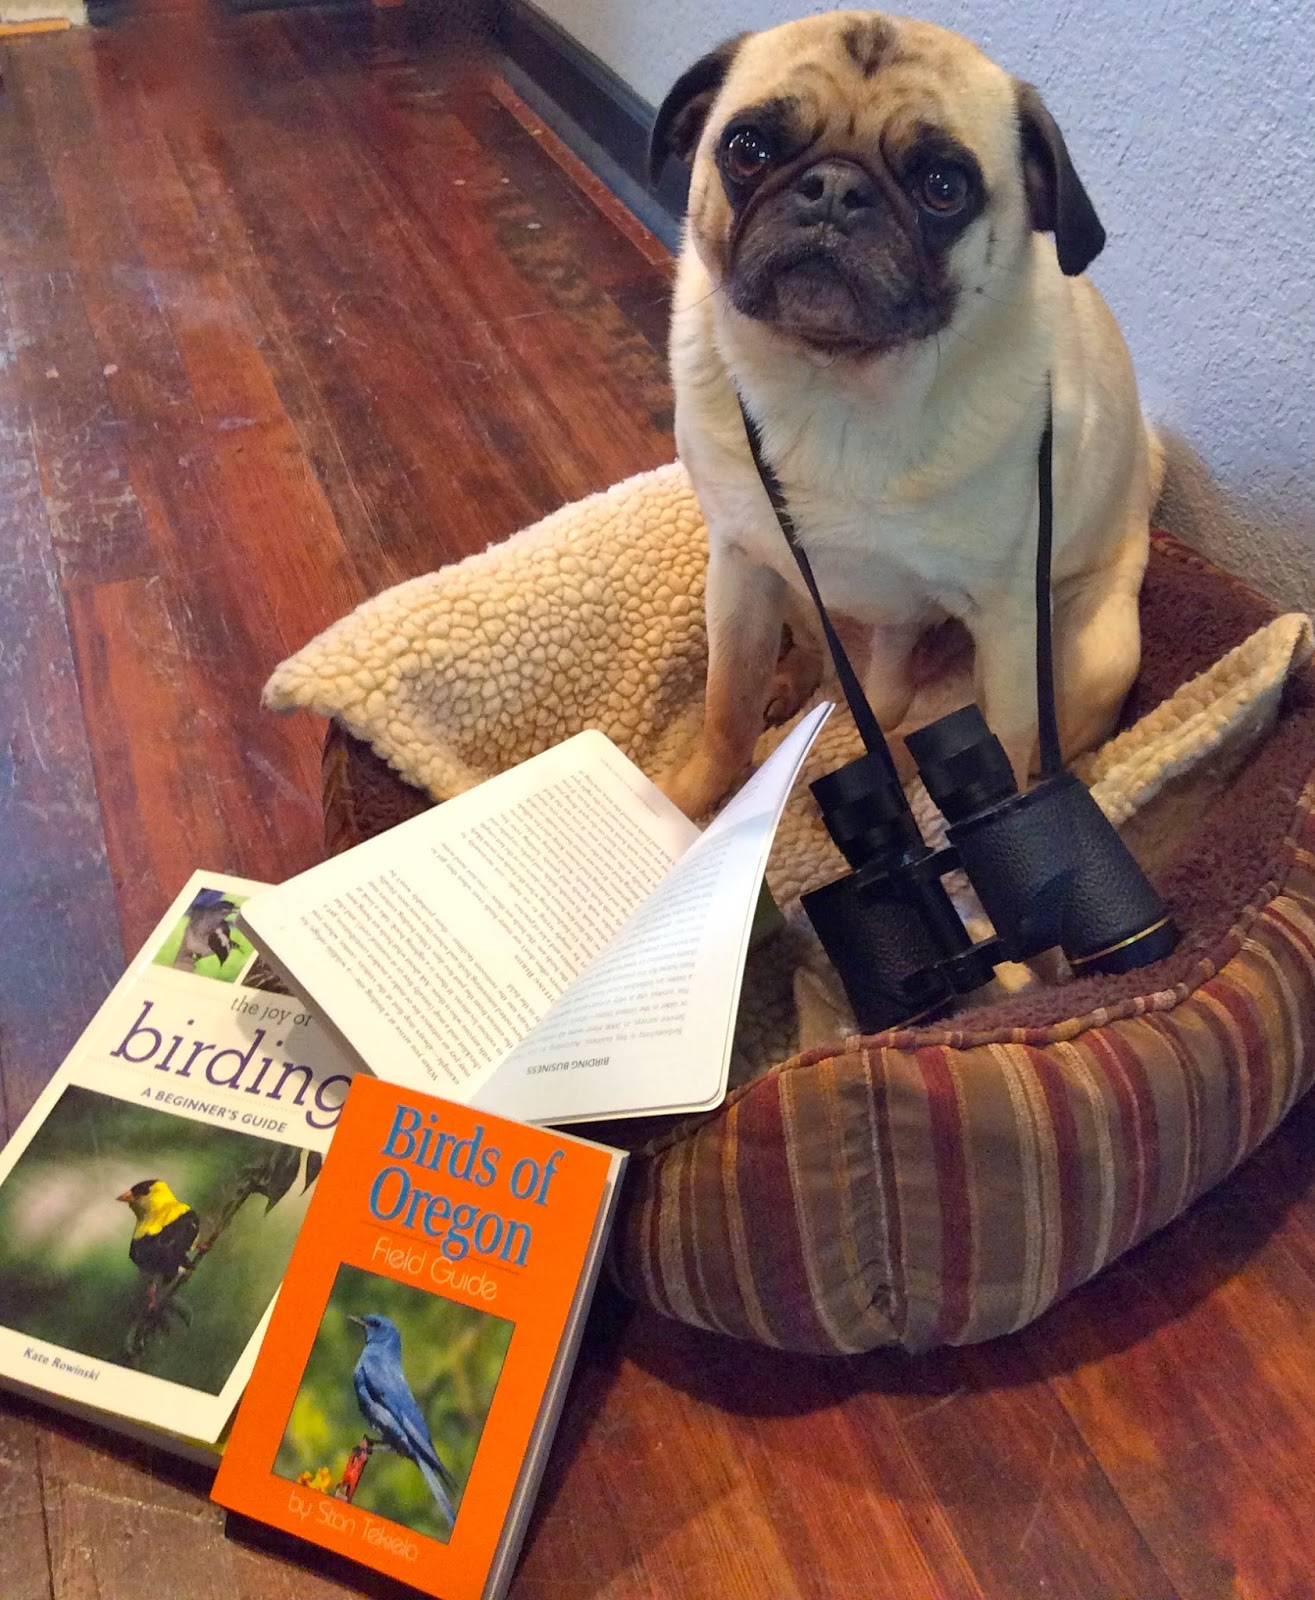 Pug sitting with his binoculars and birding books